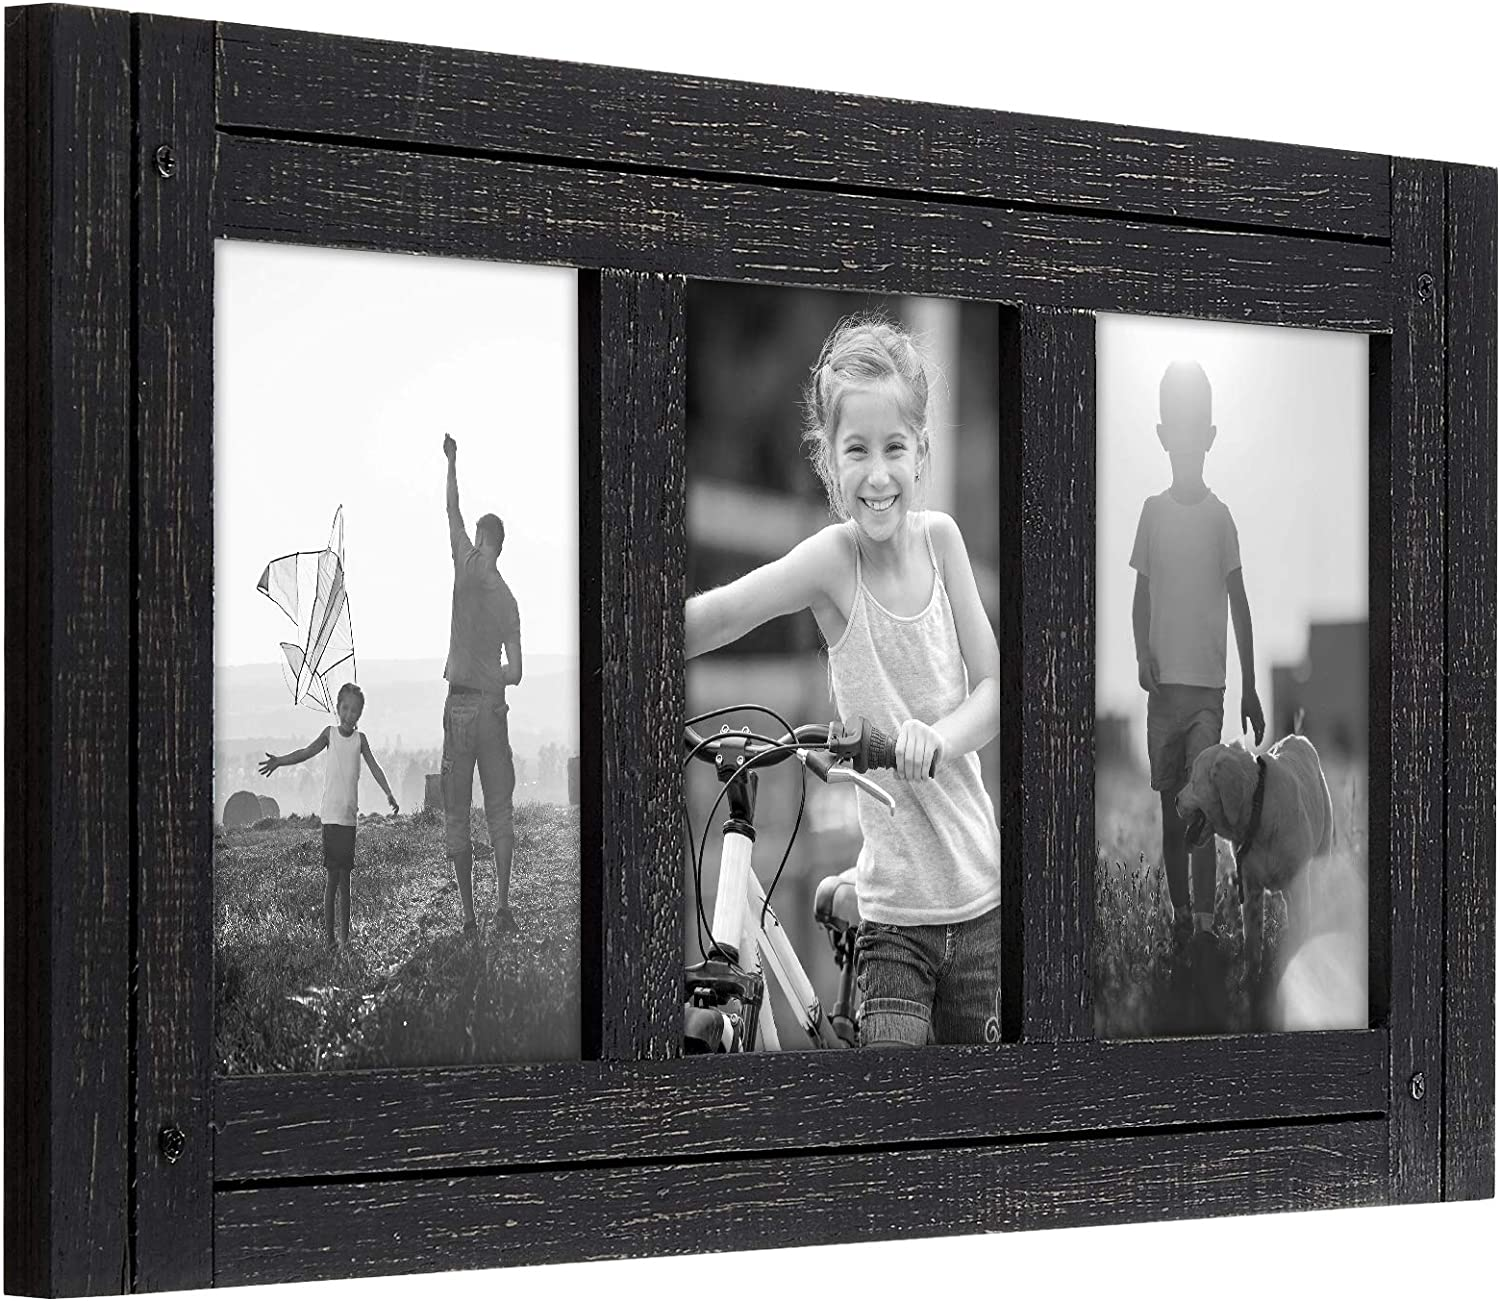 Americanflat Picture Frame in Black with Gold Trim and Lead Free Polished Glass